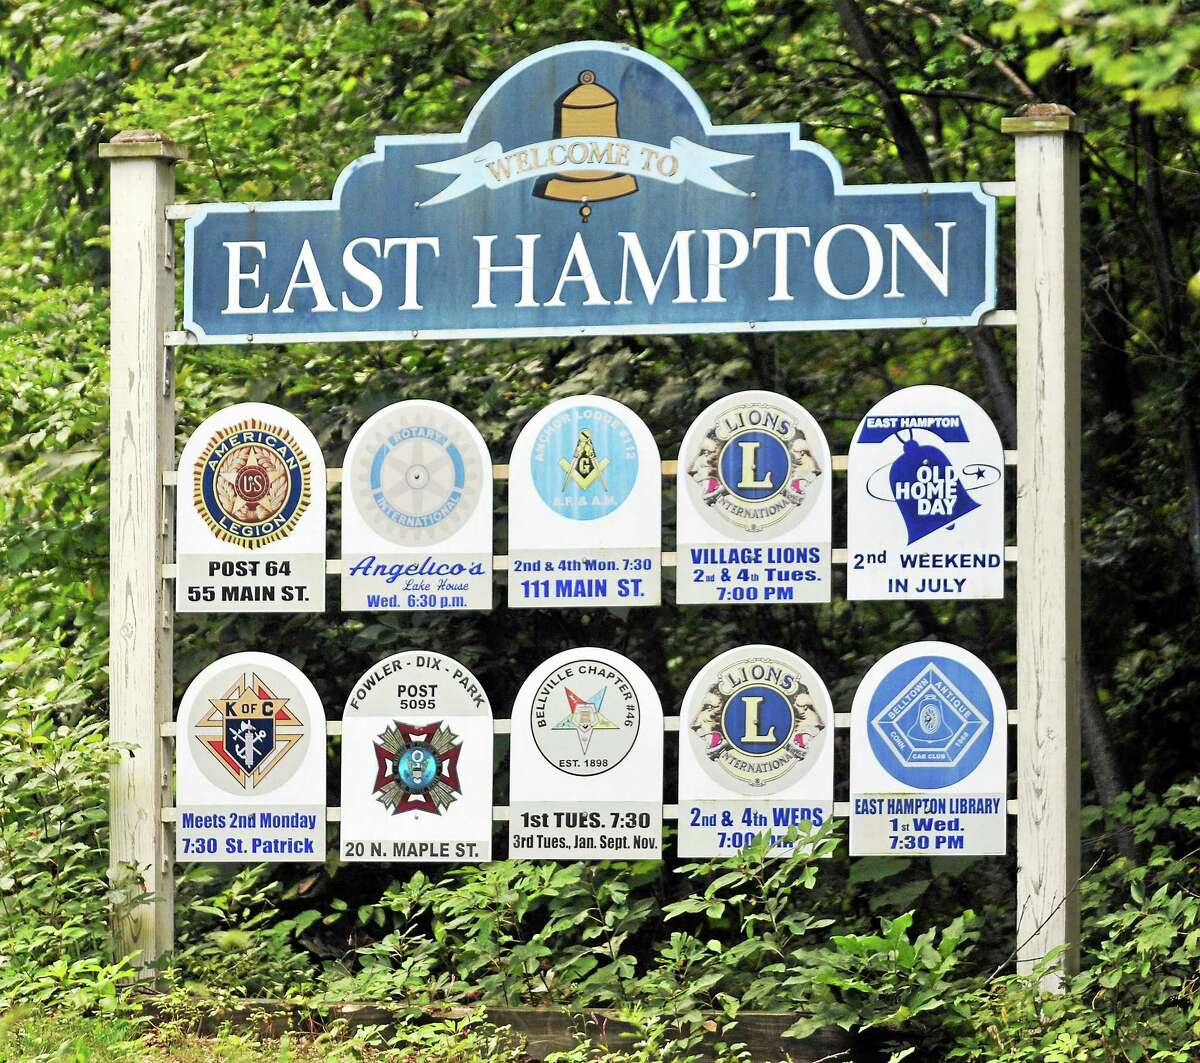 Catherine Avalone - The Middletown Press Town of East Hampton